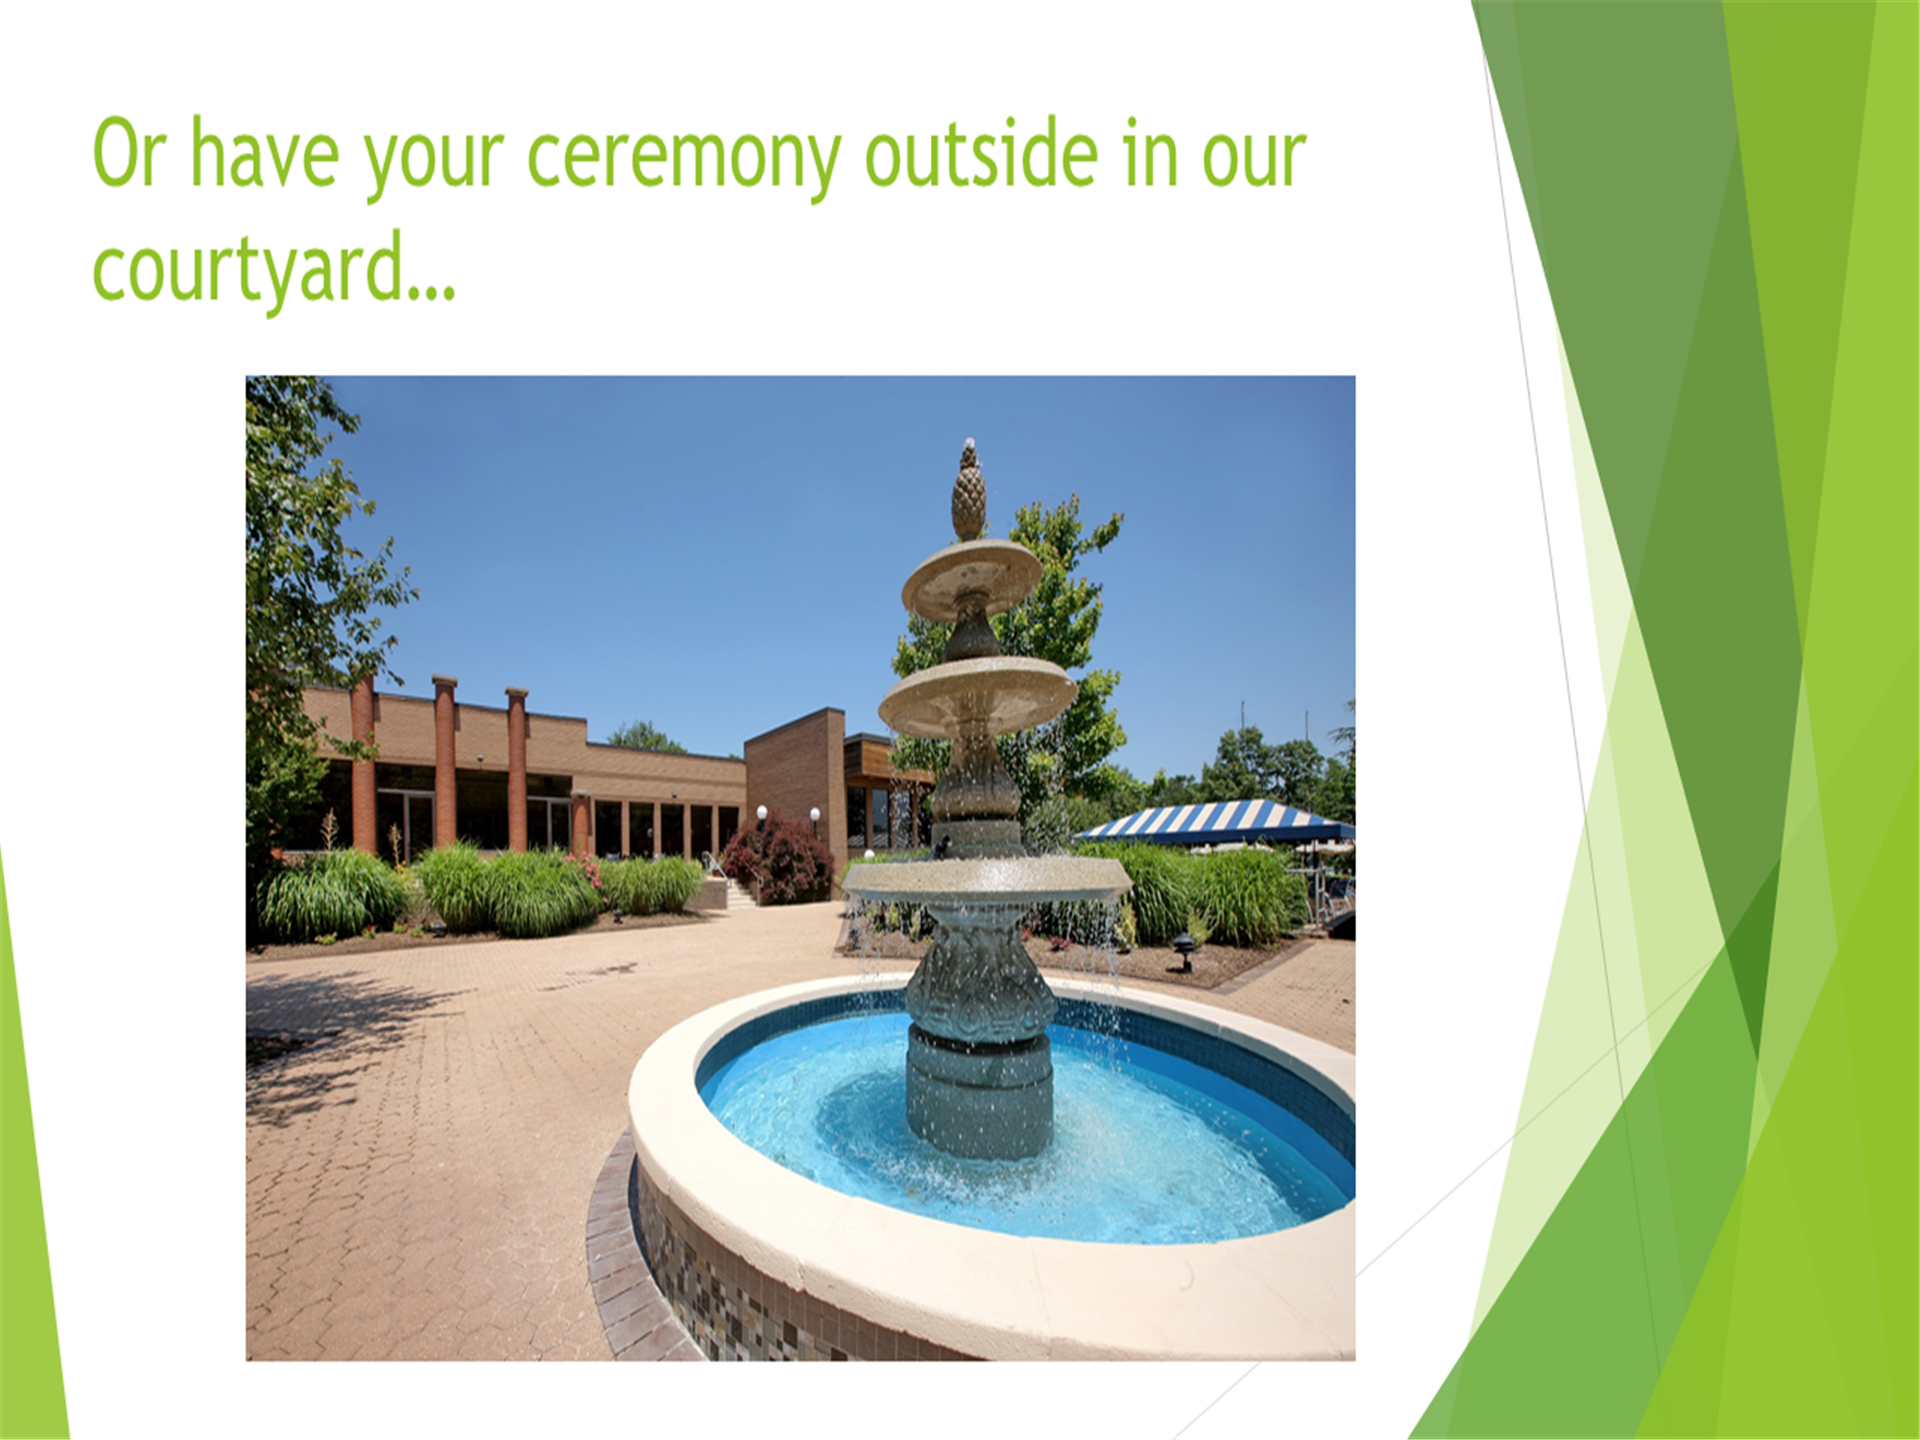 Or have the ceremony outside in our courtyard... image of the water fountain in the courtyard area.